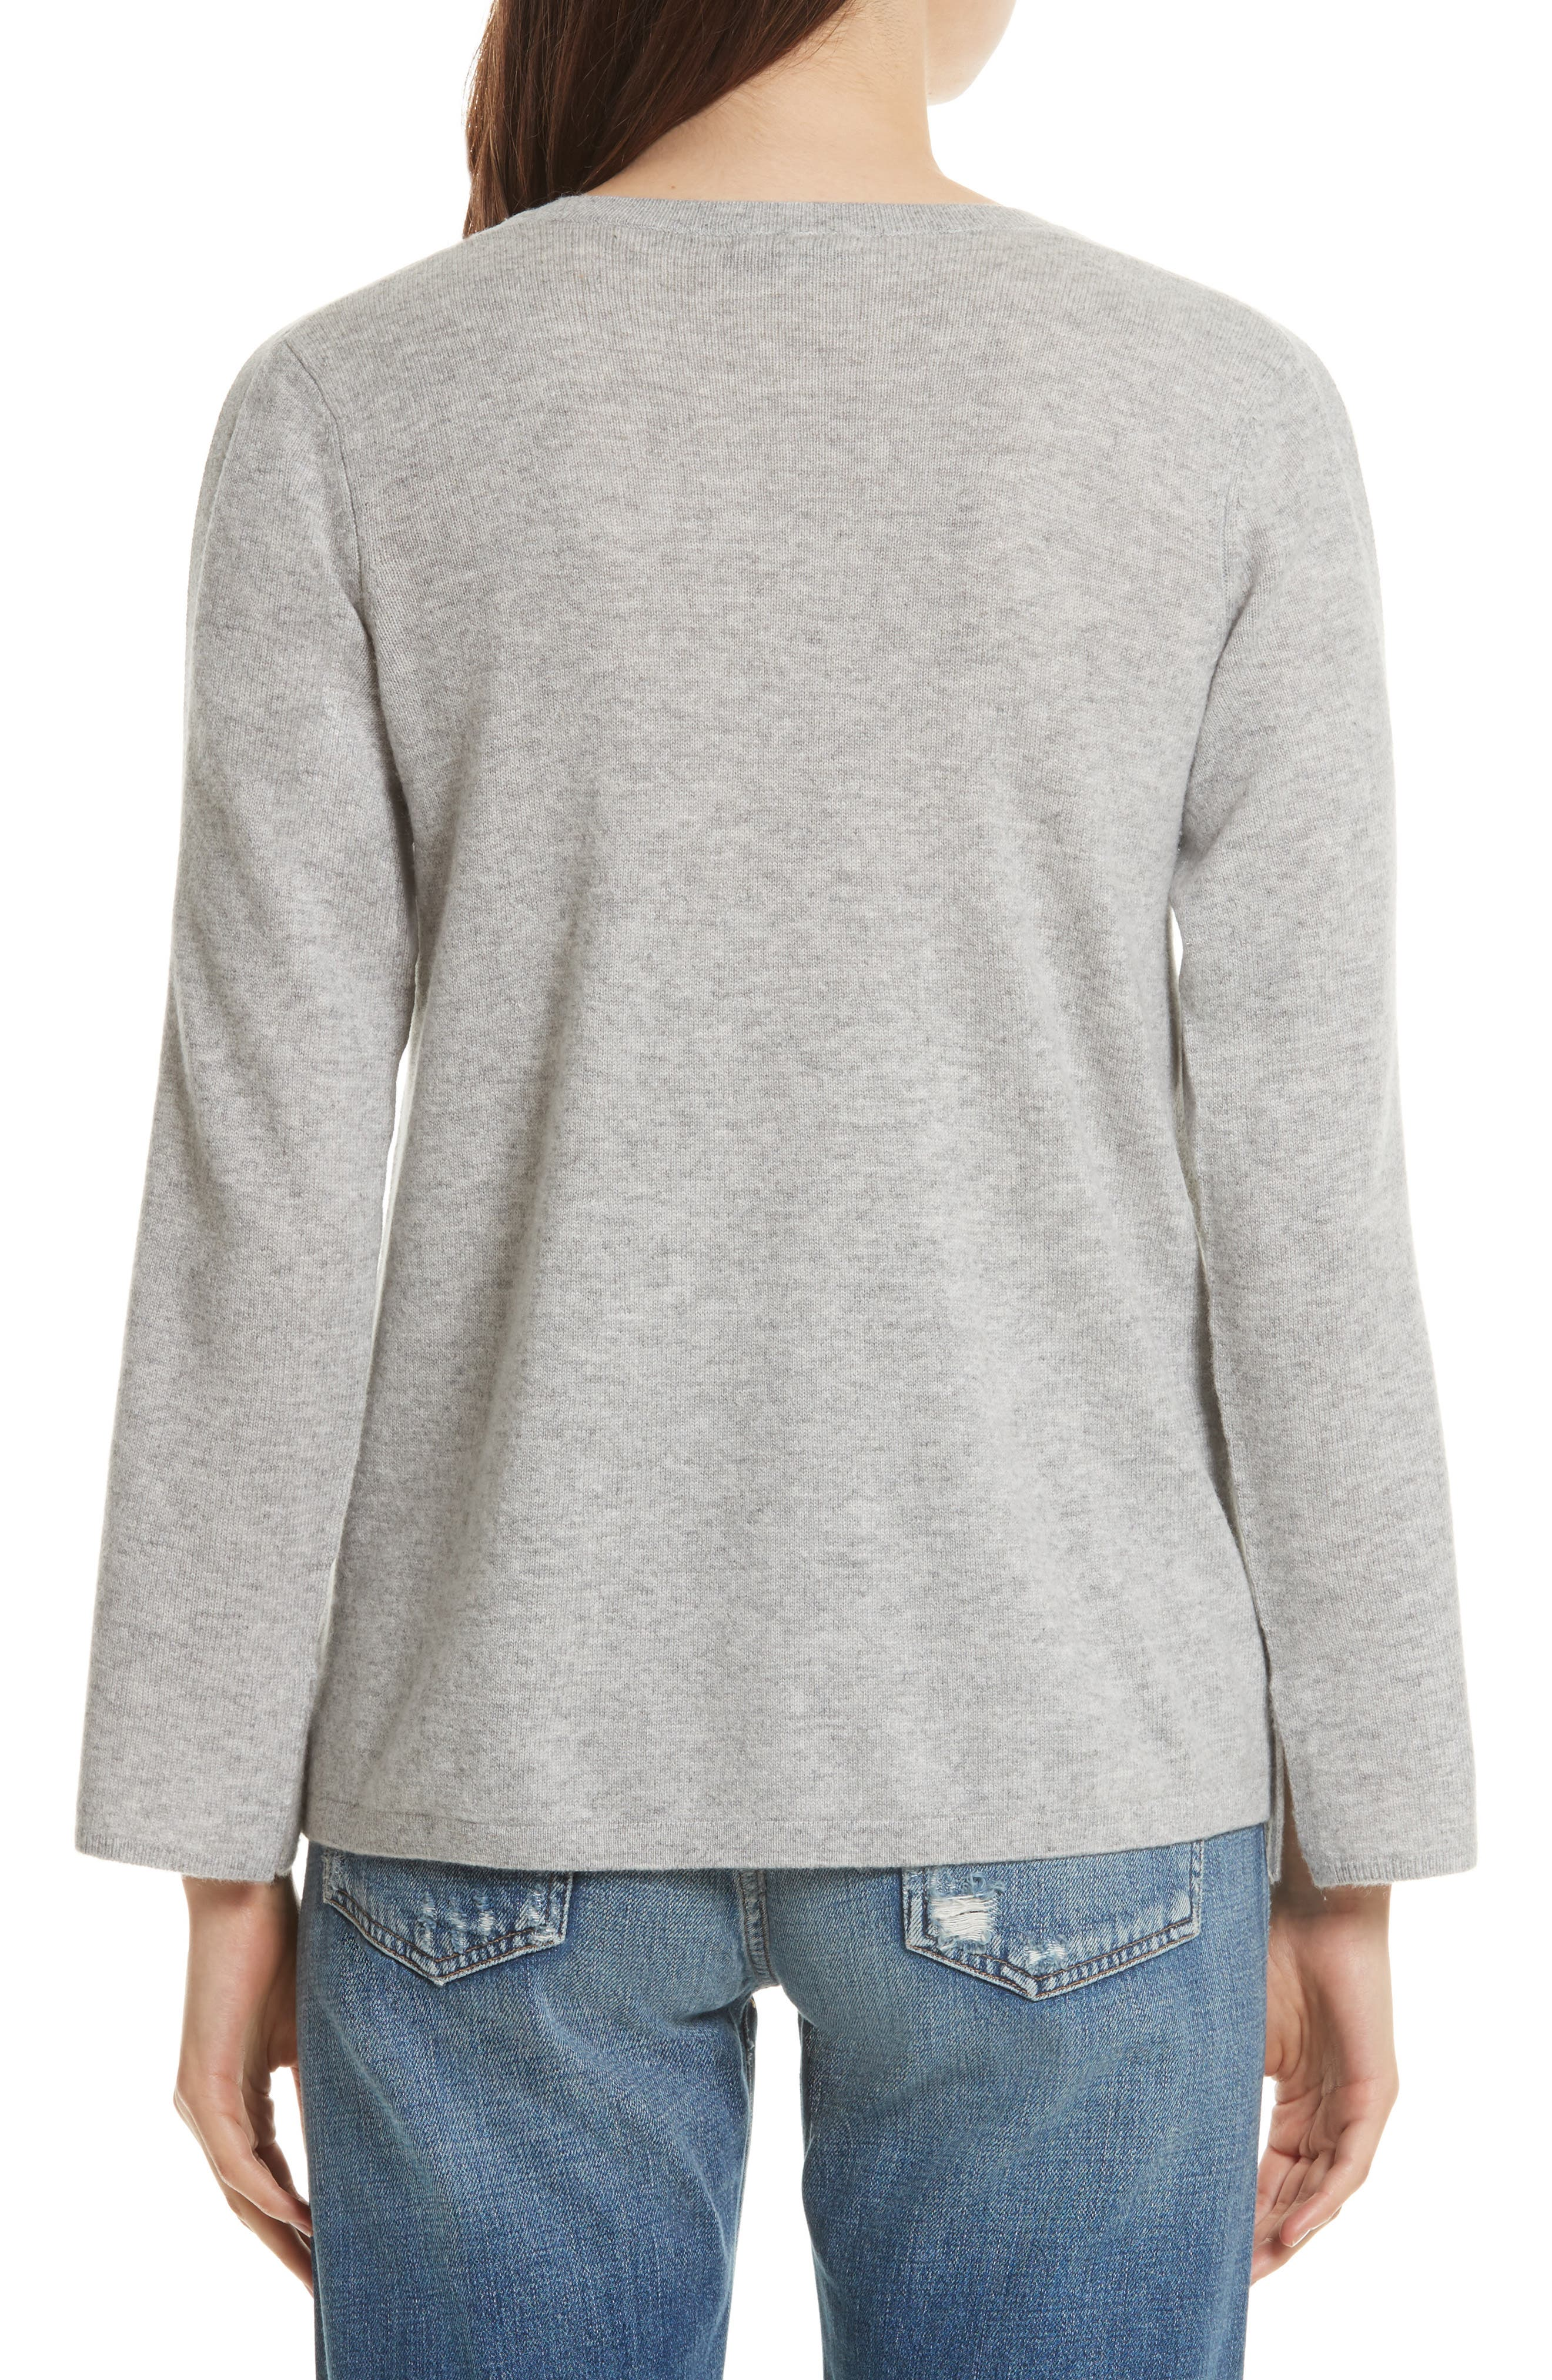 Amalyn Cold Shoulder Wool & Cashmere Sweater,                             Alternate thumbnail 2, color,                             Ash Heather Grey